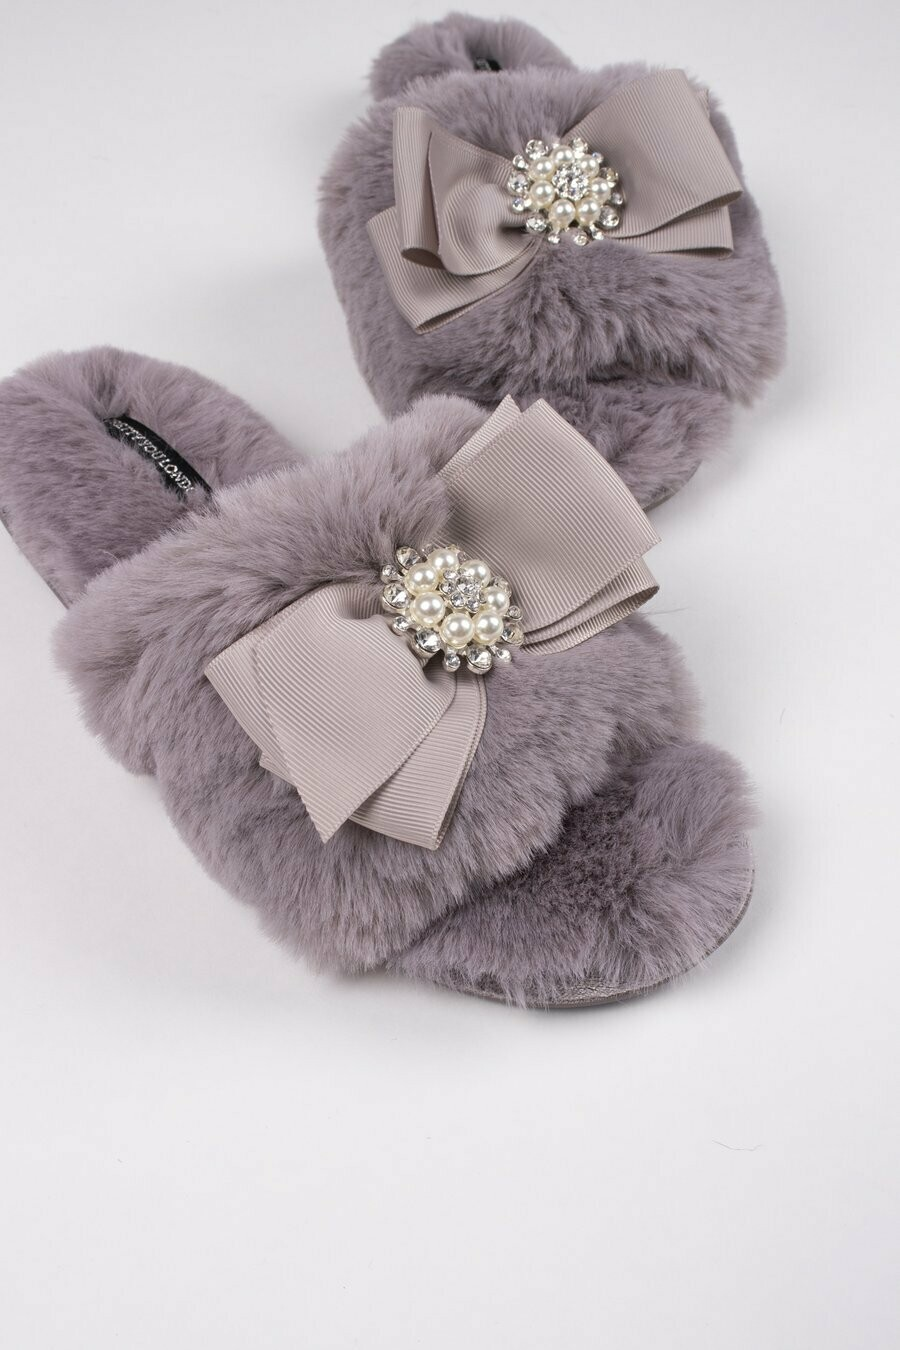 Women's Mink Color Slide Rhinestone Luxe Slipper -Size 8/9